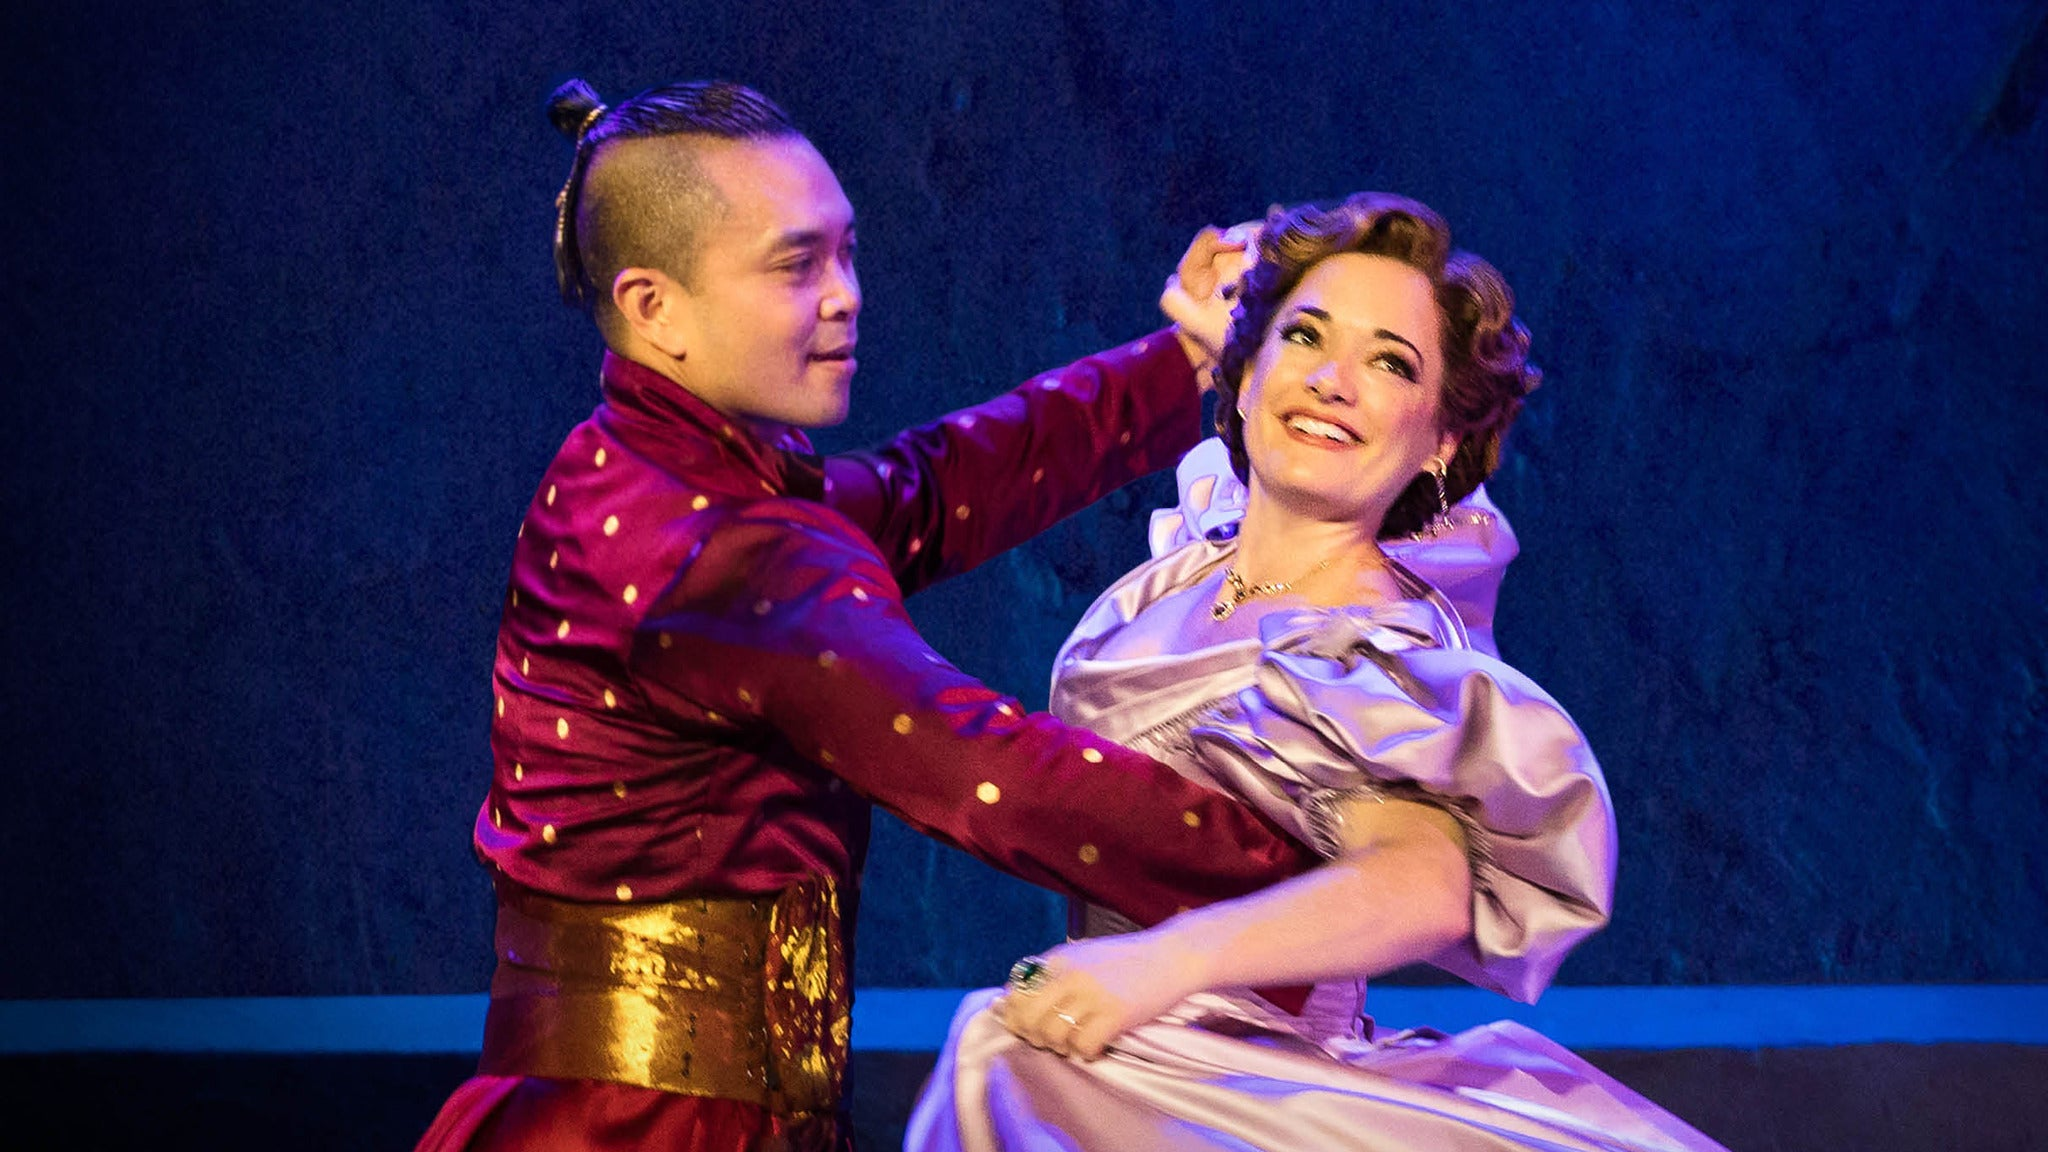 The King And I at Kennedy Center - Opera House